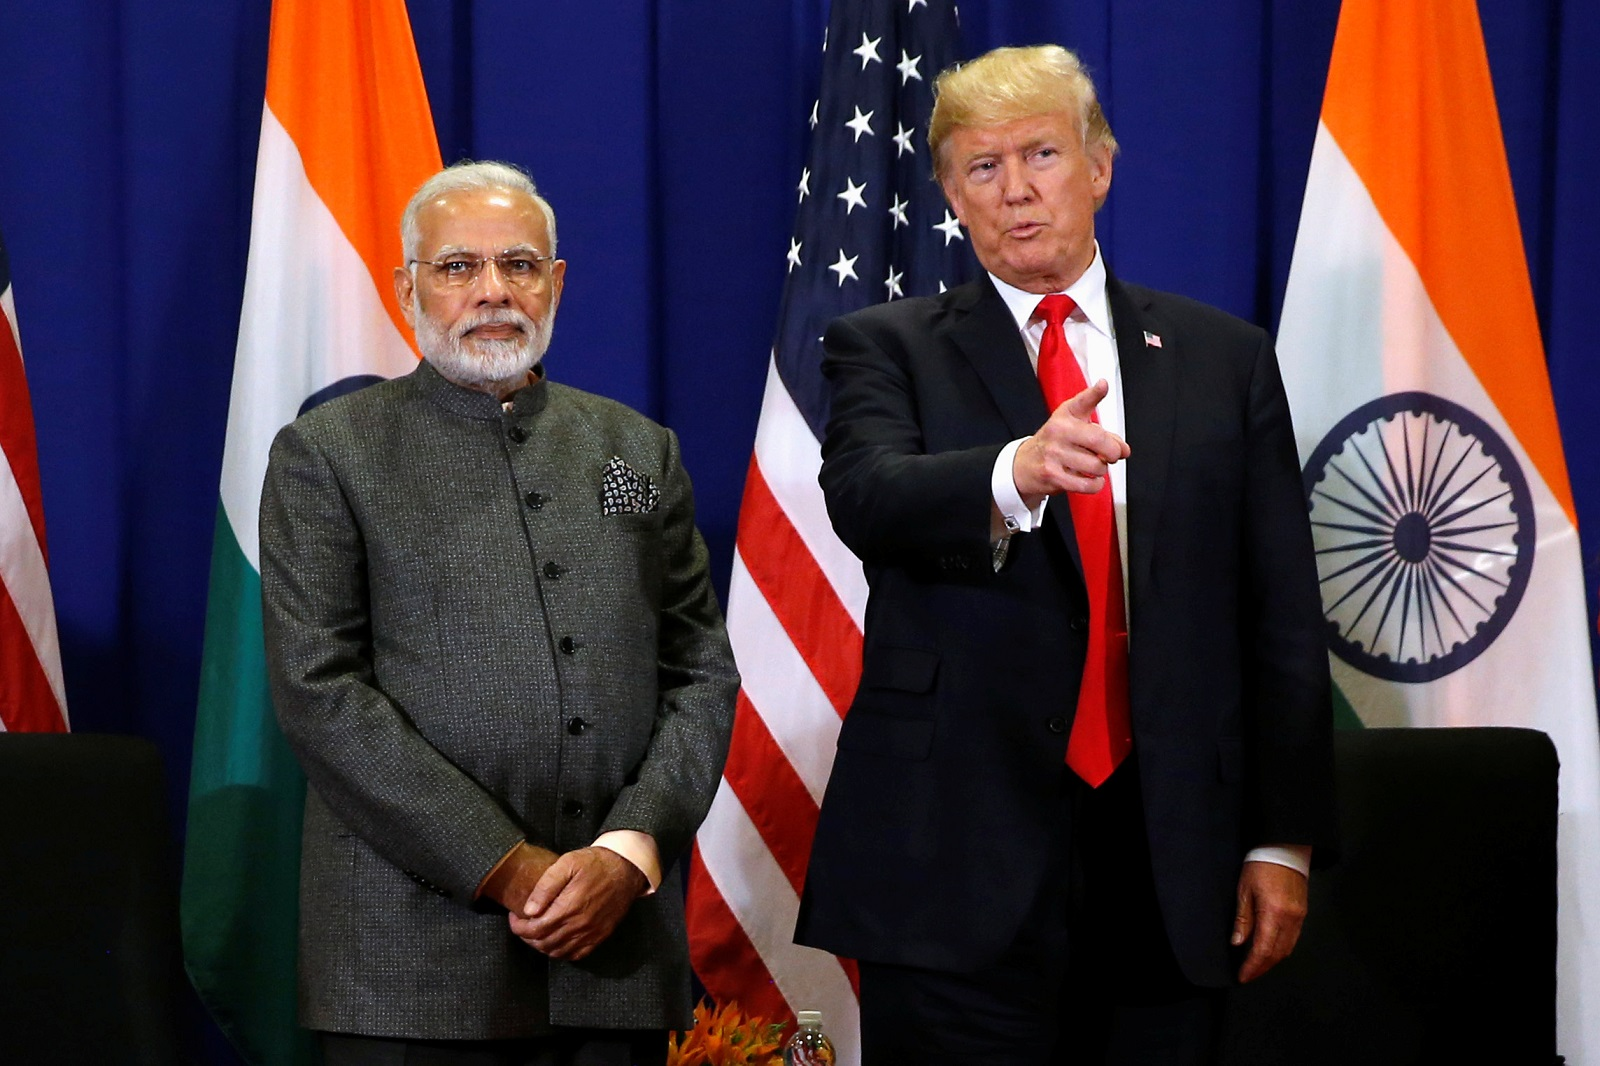 Trump's Republican Base Is Wary of India